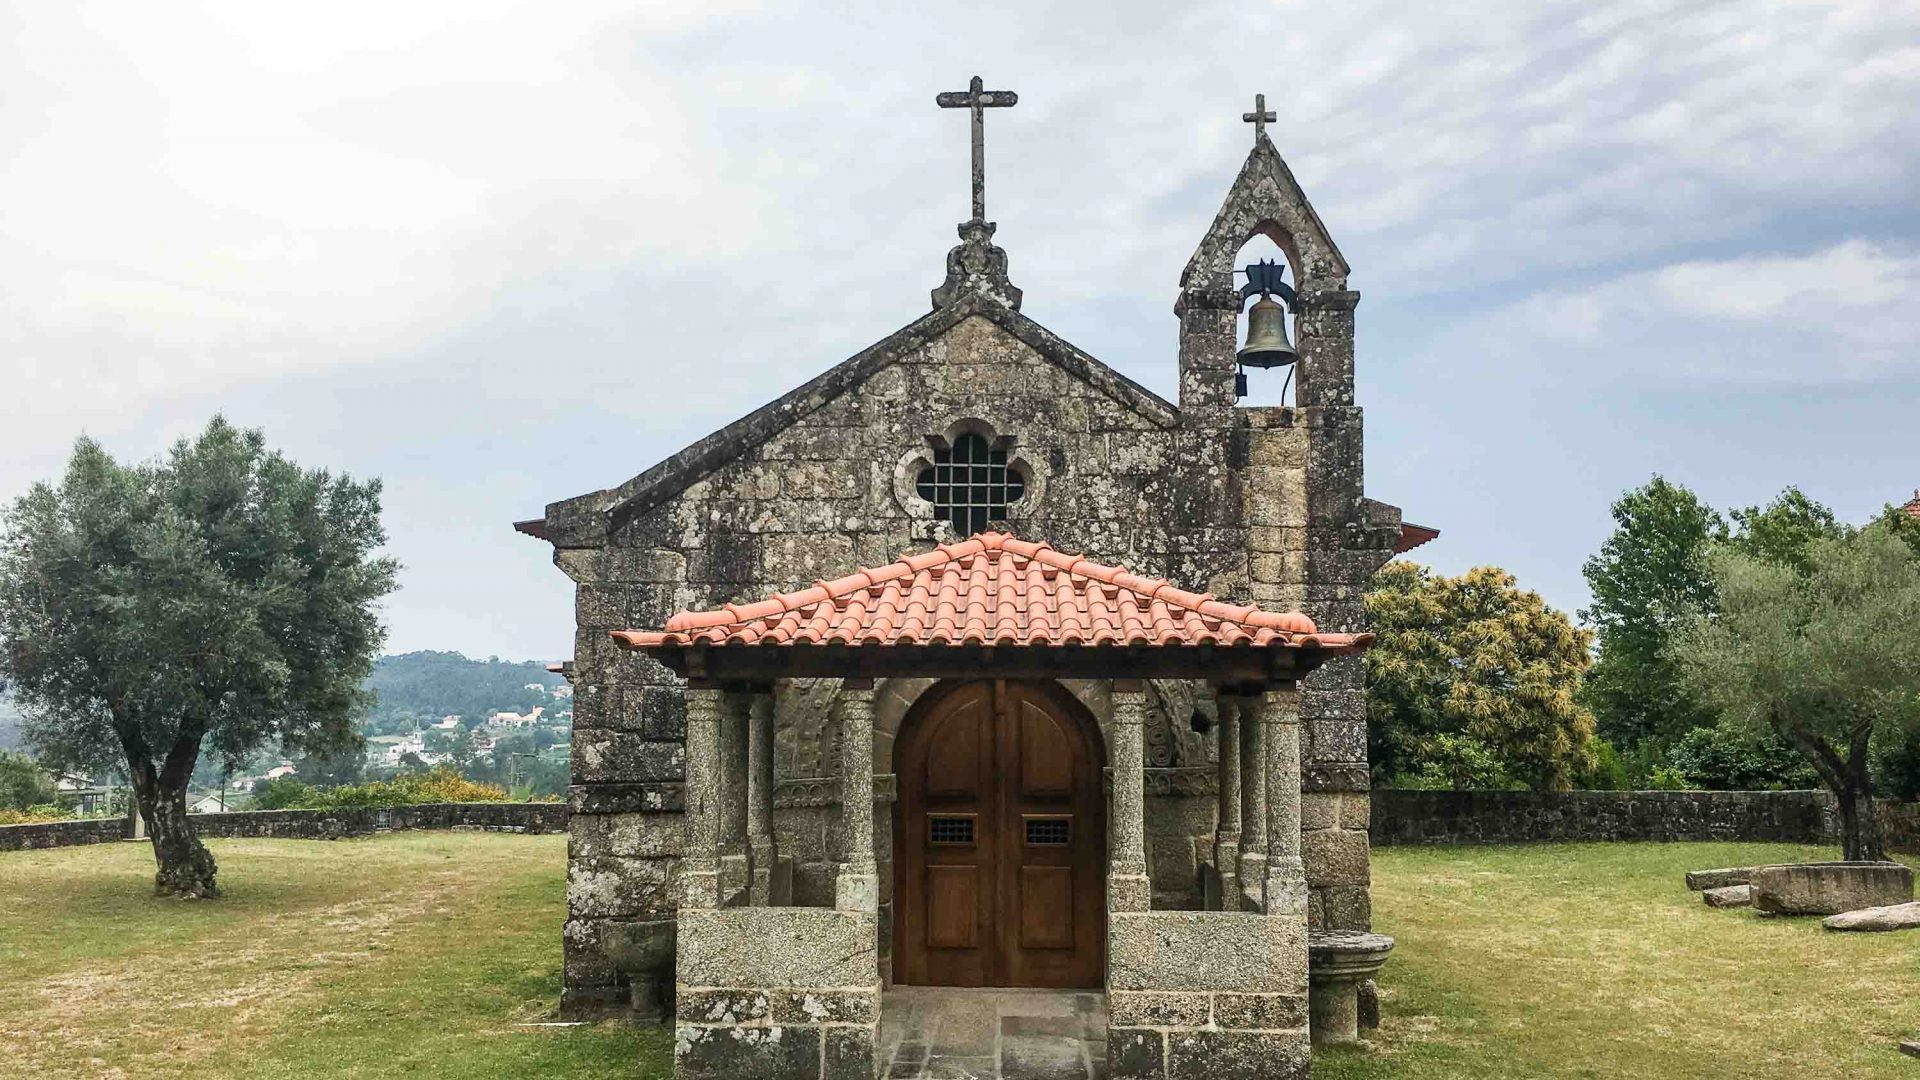 One of the typical Portuguese churches to be found en route.